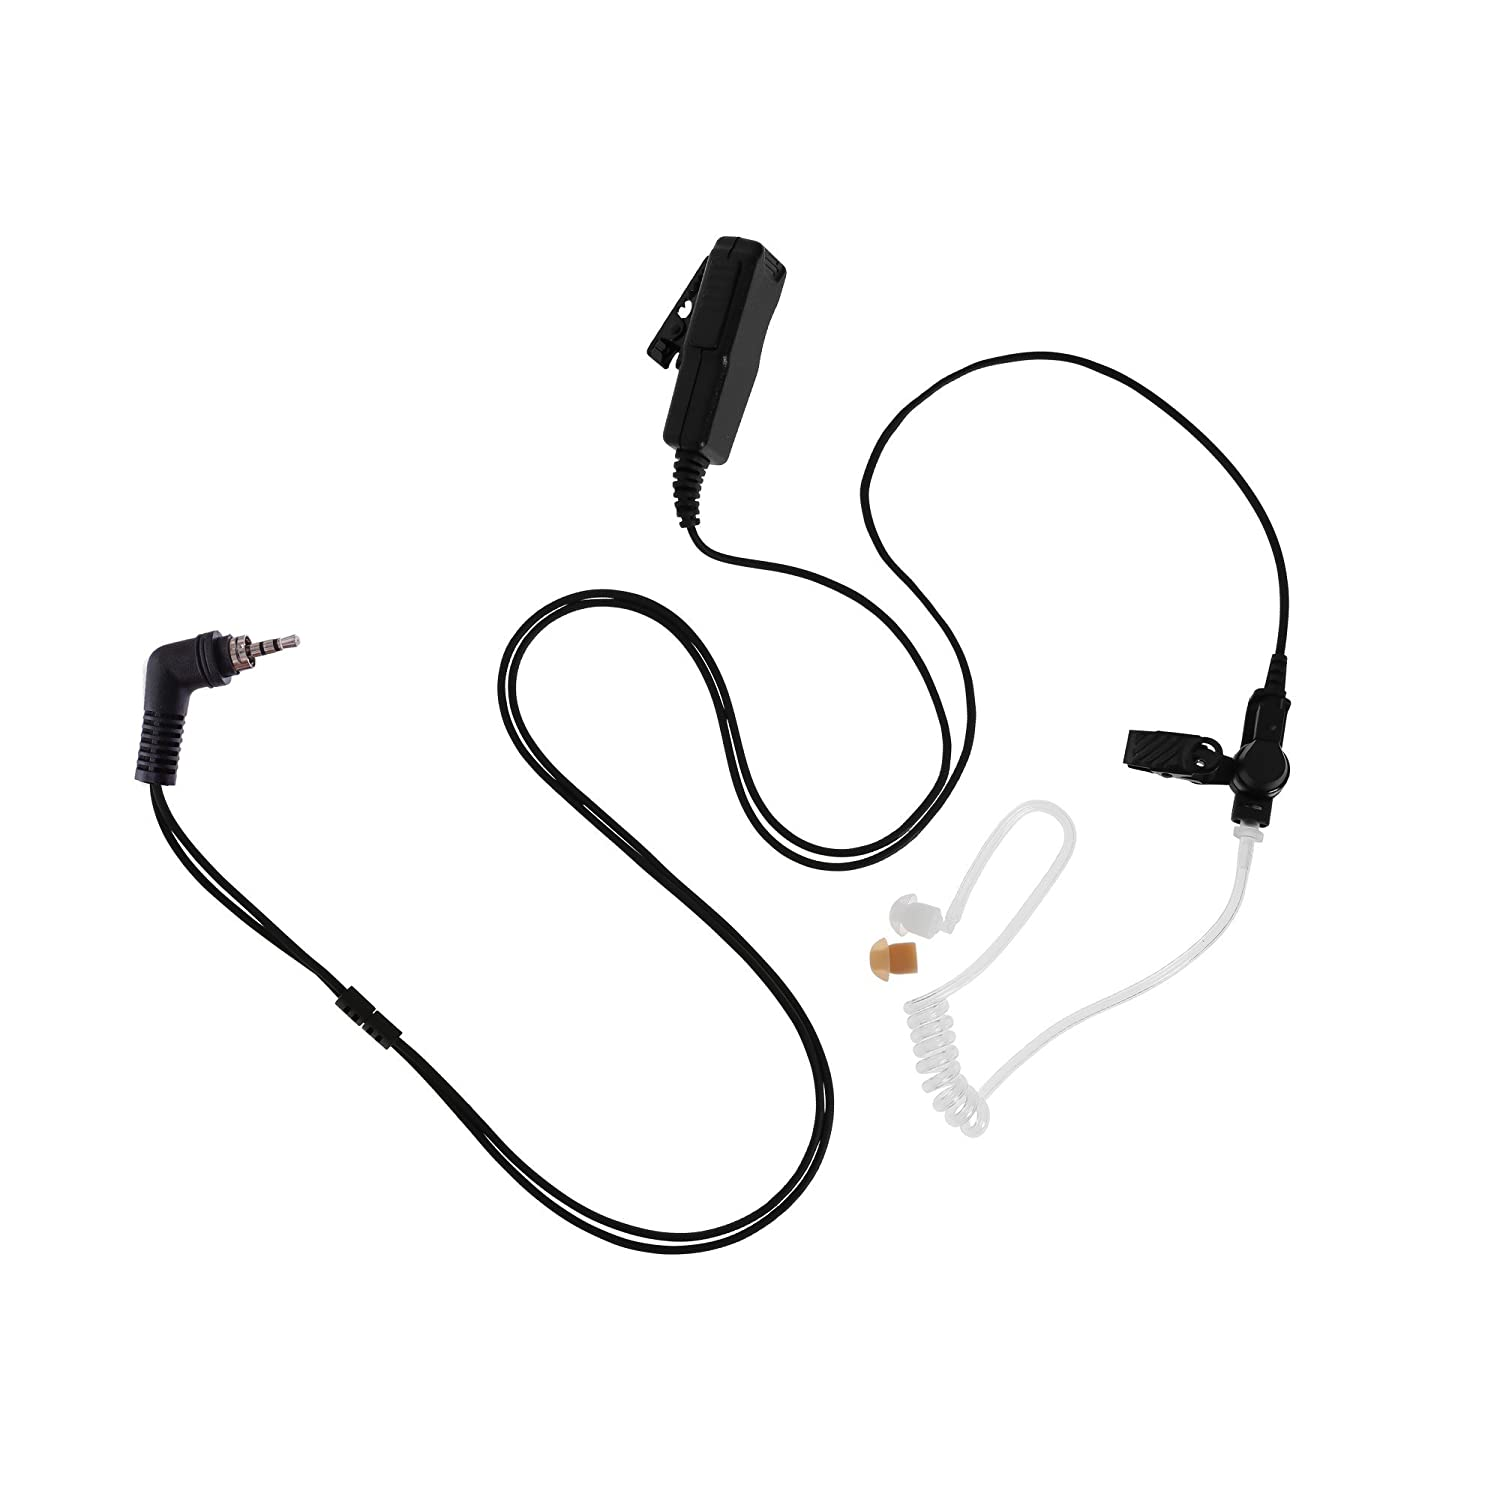 Maxtop ASK4032-M15 2-Wire Acoustic Ear Tube Surveillance Kit for Motorola MTH650 MTH800 MTH850